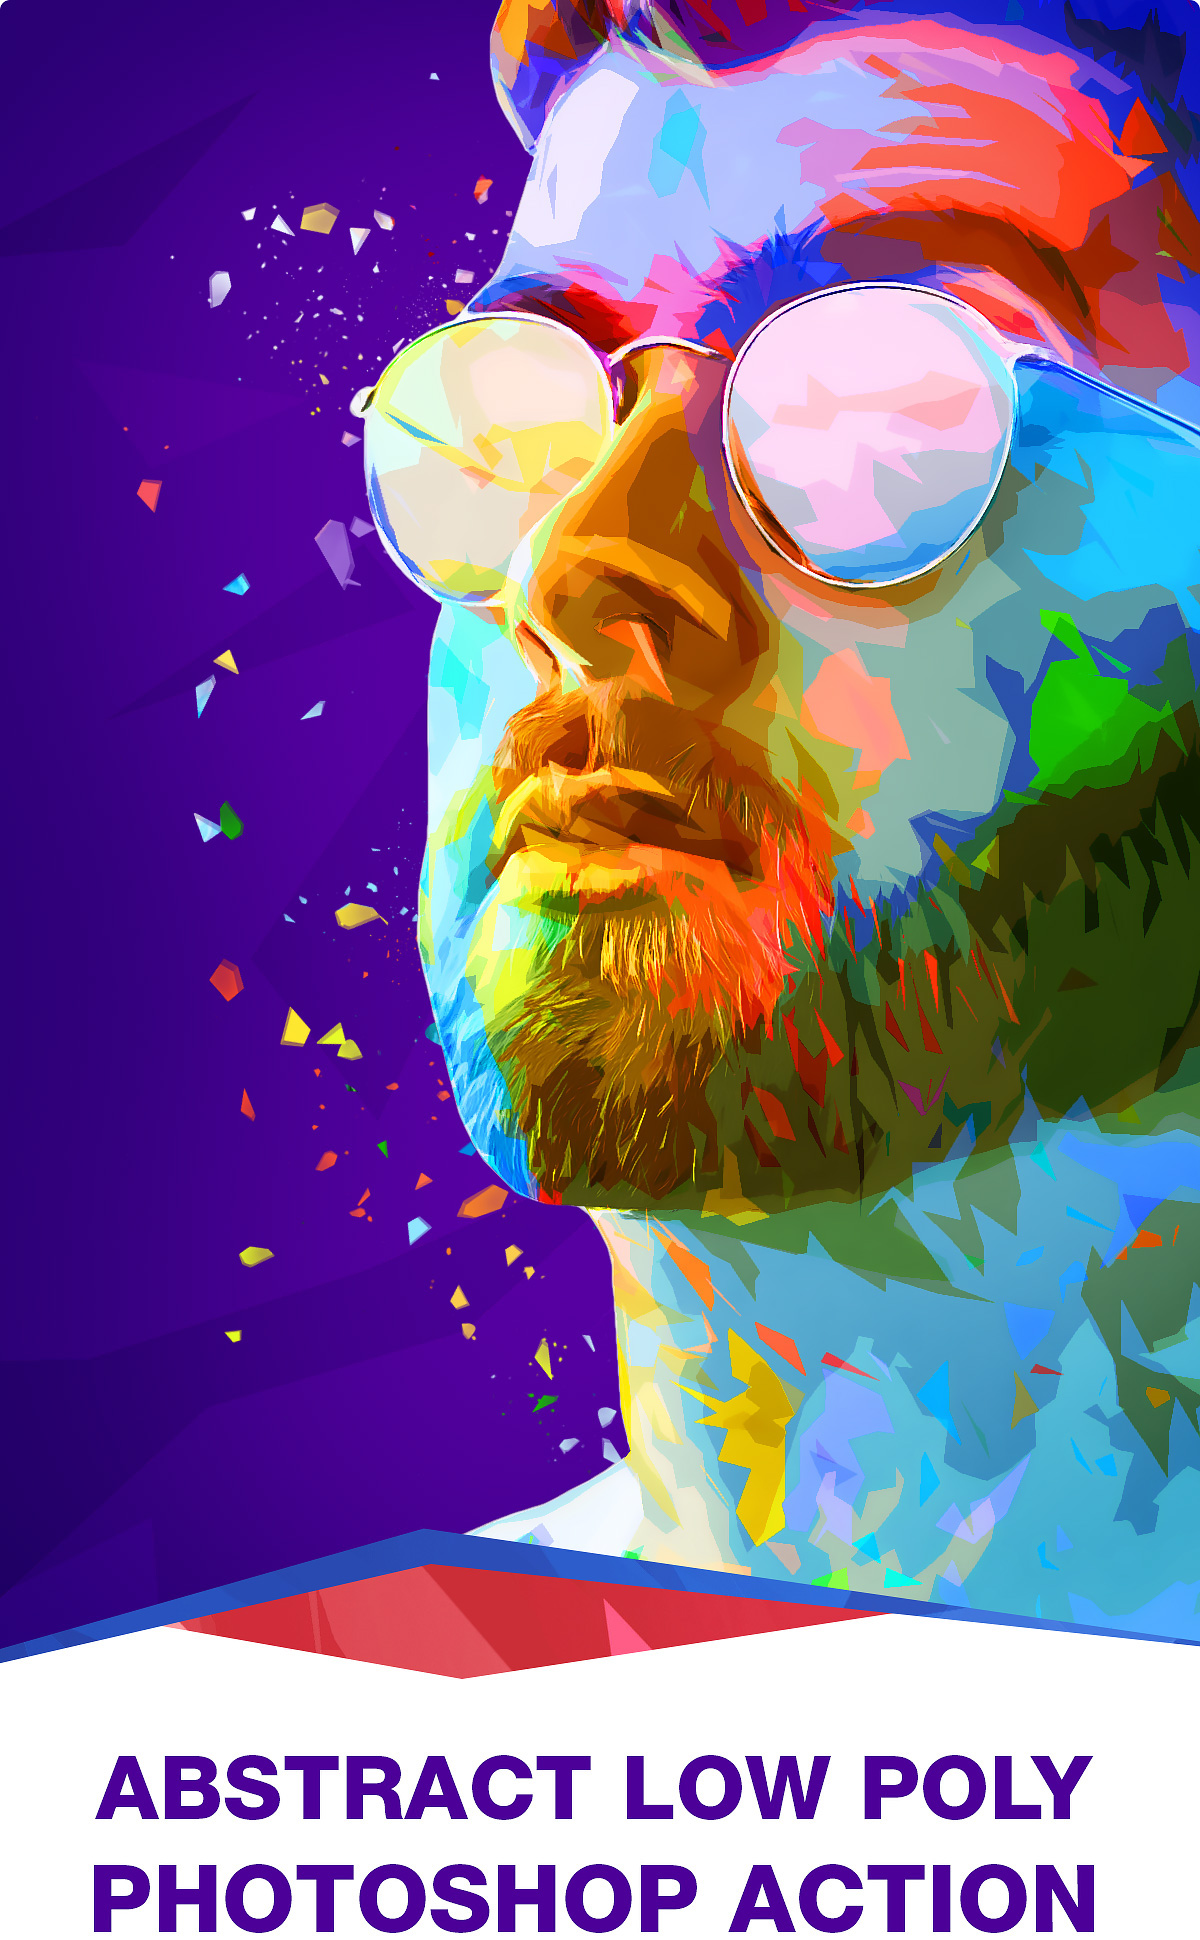 Photoshop Action -Abstract Low Poly on Behance